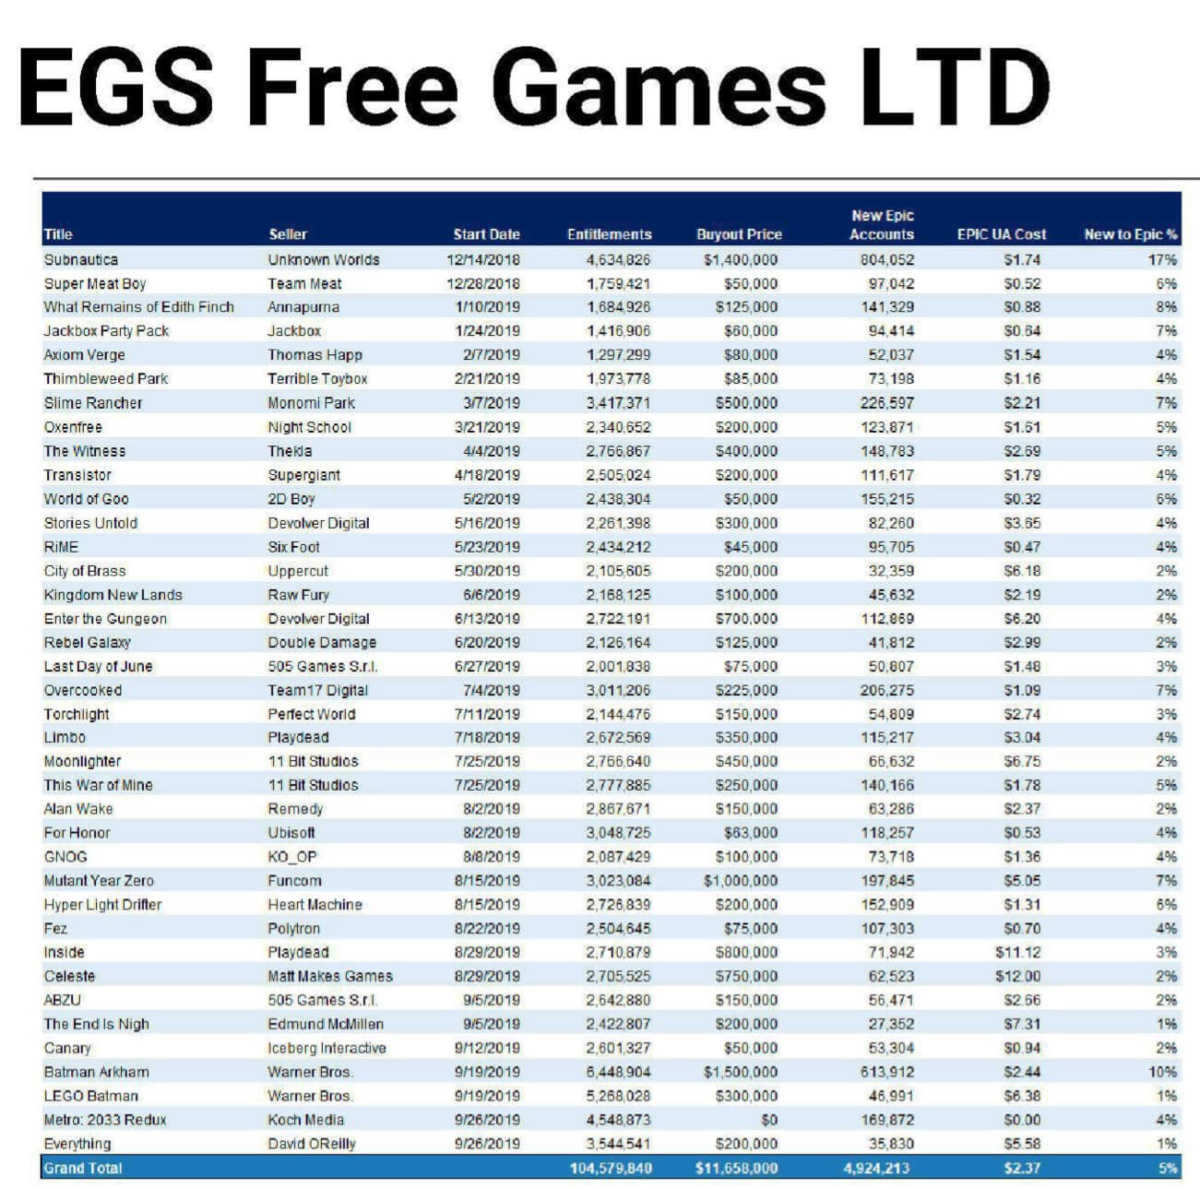 epic games store, epic games, epic games giochi gratuiti, epic games giochi gratuiti costo licenze